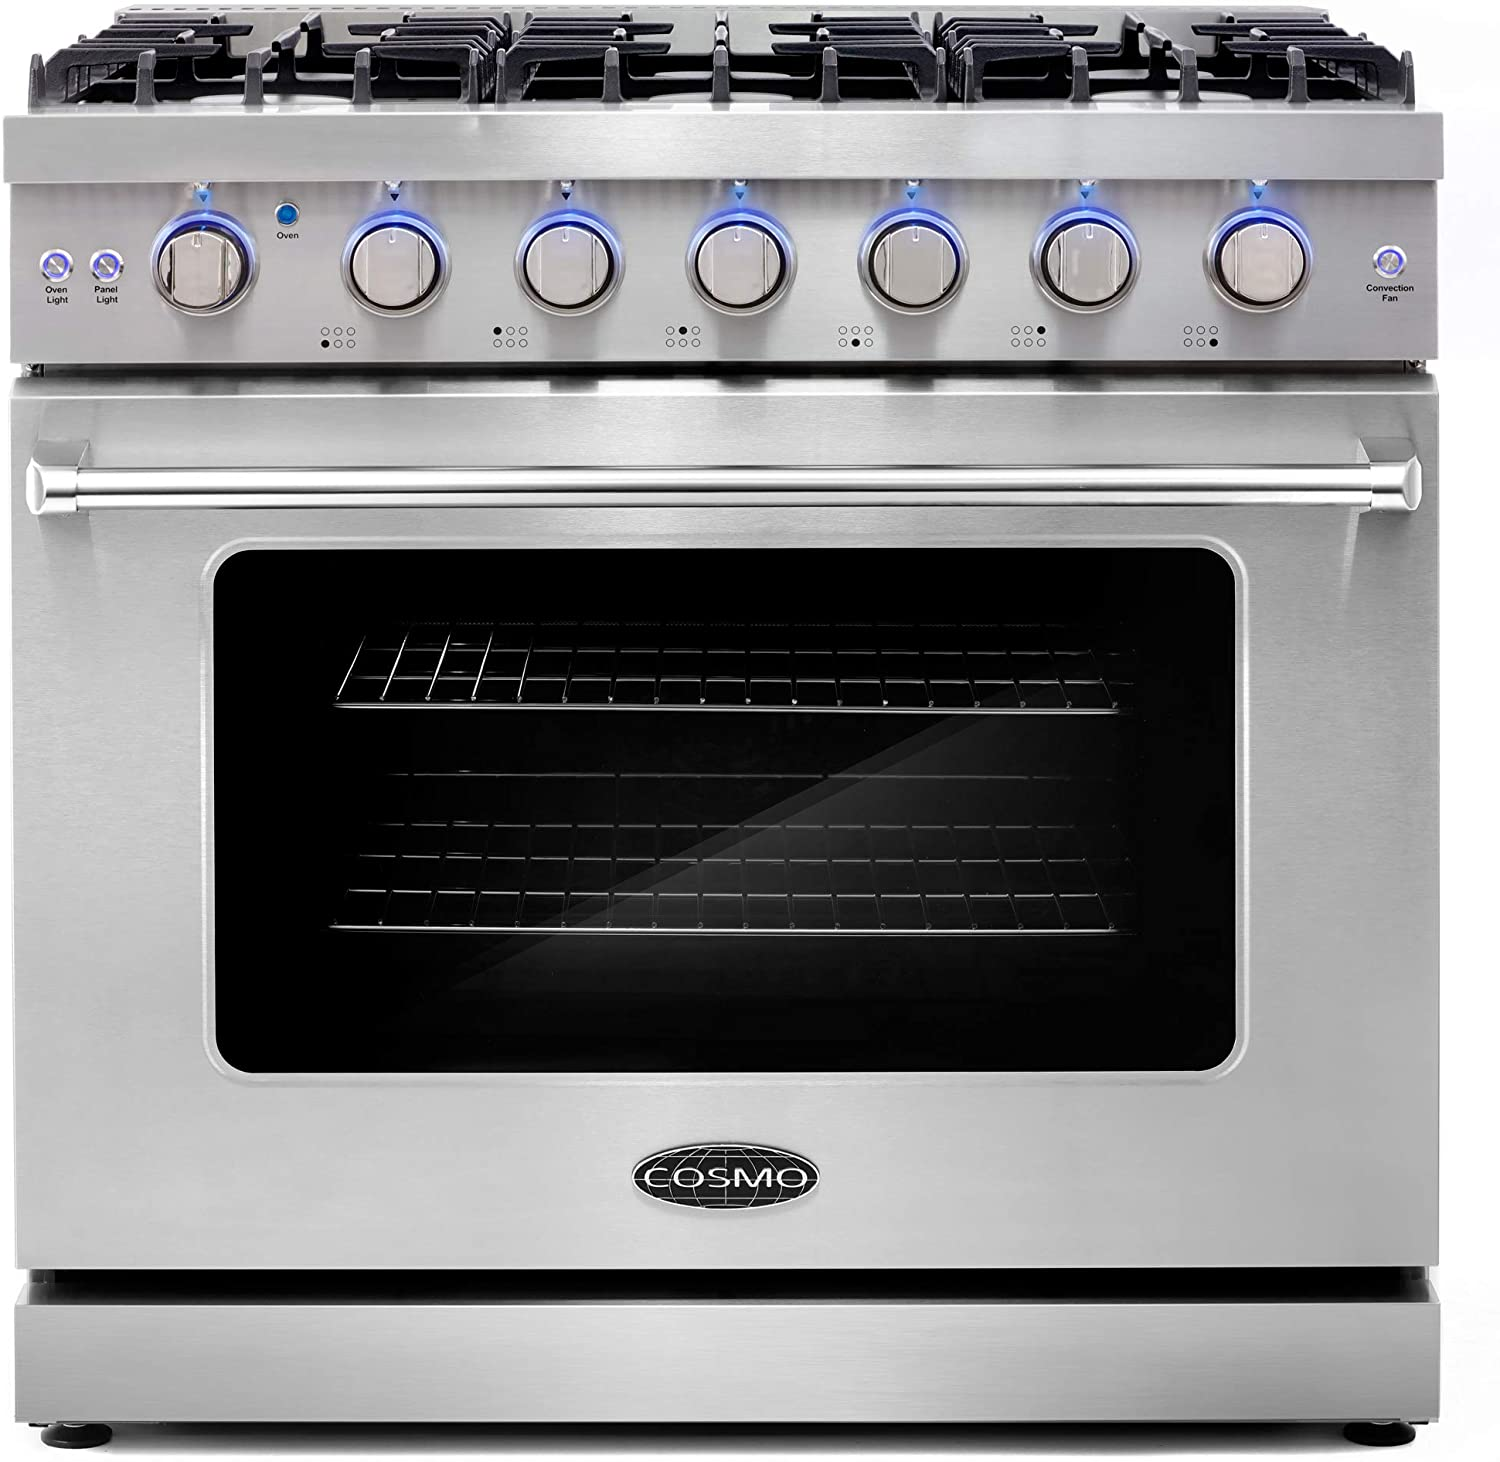 Cosmo COS-EPGR366 36 in. Slide-In Freestanding Gas Range with 6 Italian Burners, Cast Iron Grates and 6.0 cu. ft. Convection Oven in Stainless Steel